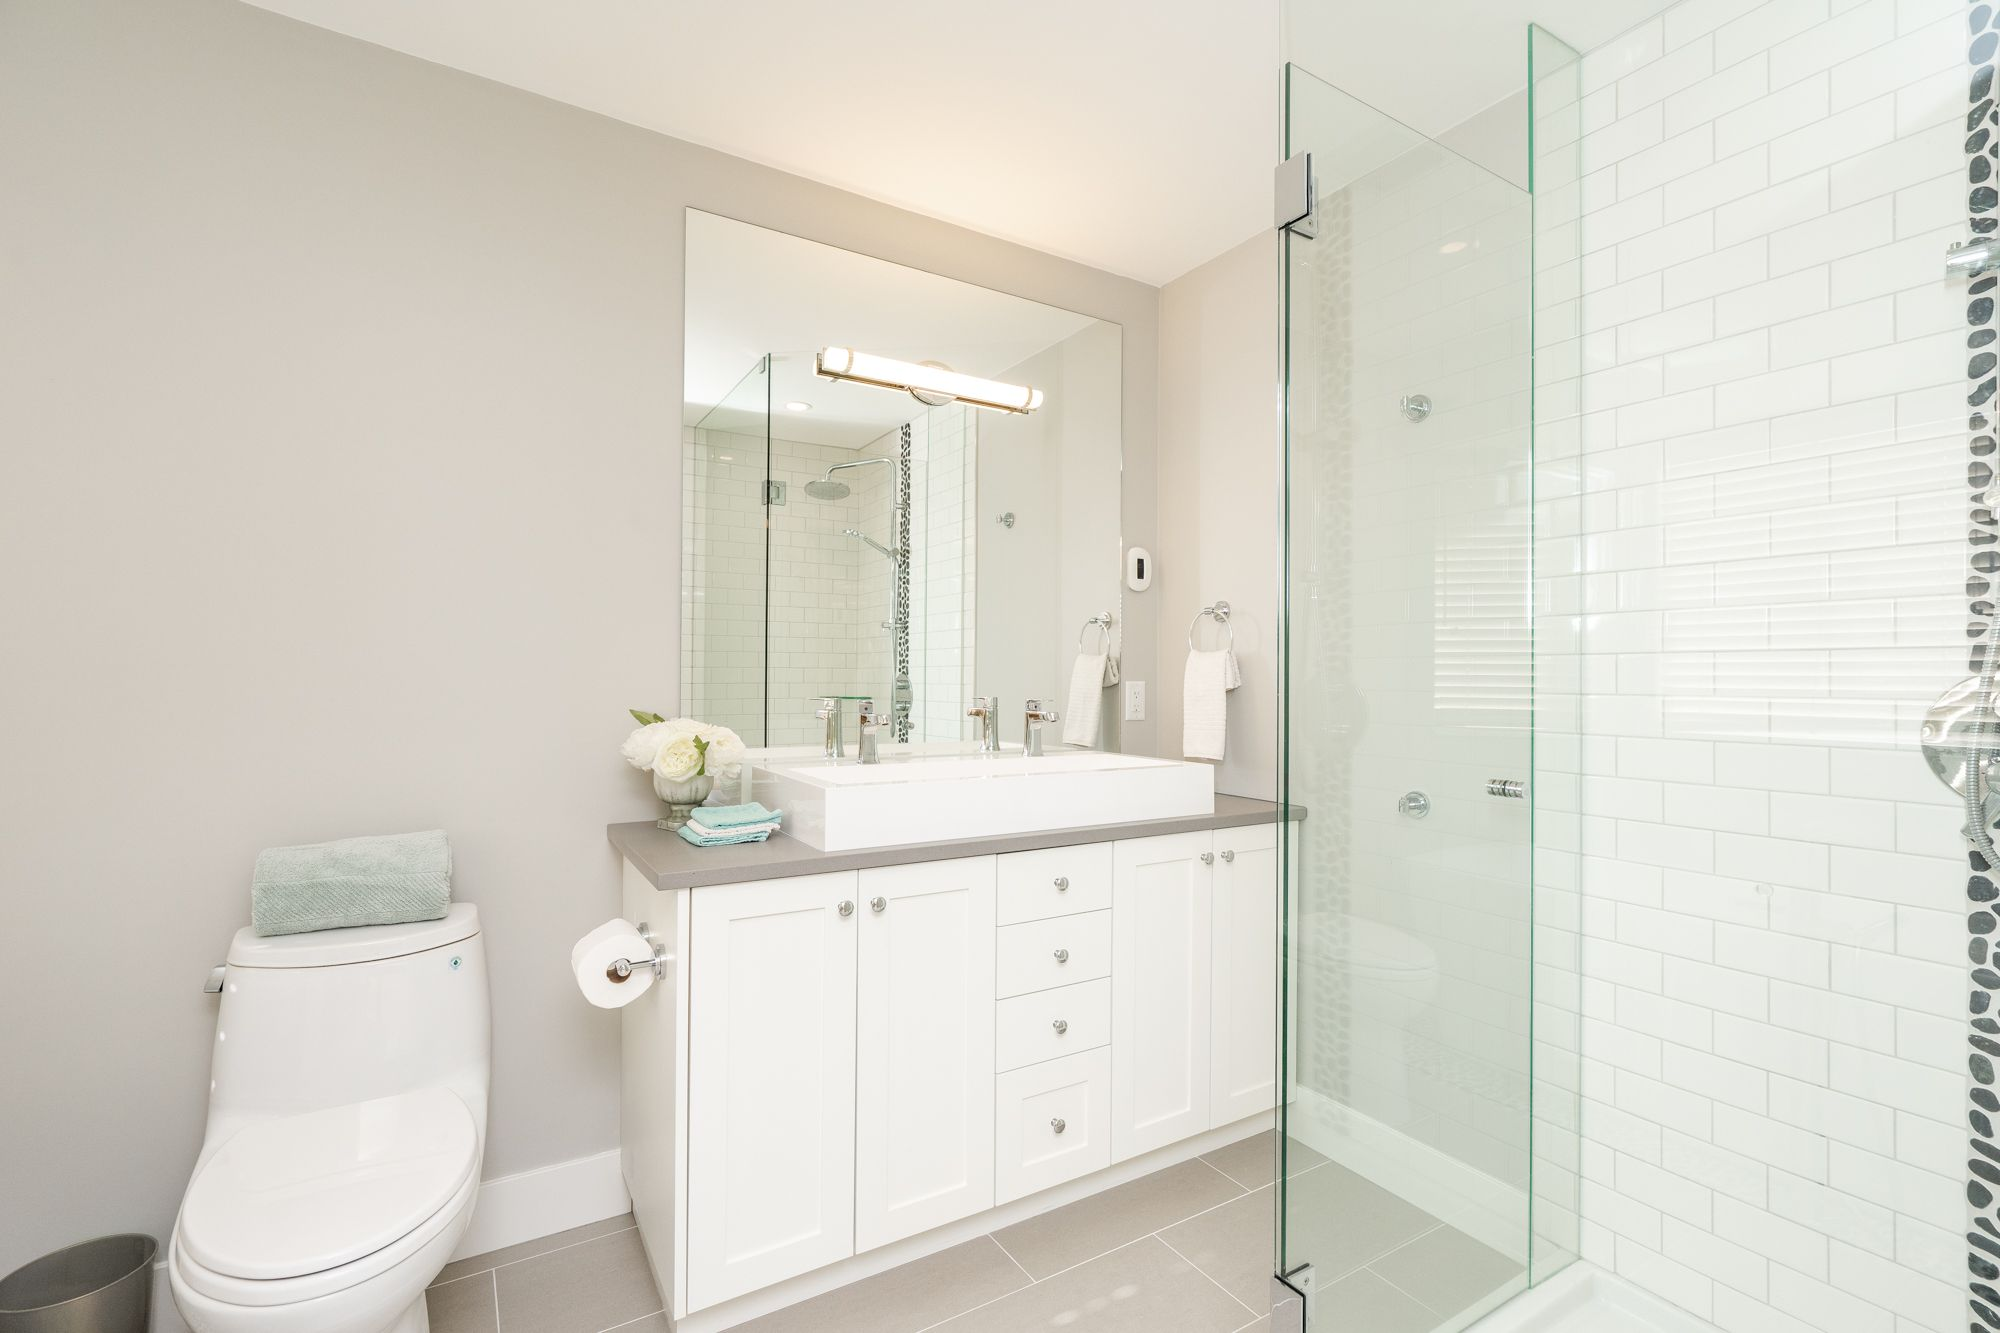 """Photo 22: Photos: 8448 213 Street in Langley: Walnut Grove House for sale in """"Forest Hills"""" : MLS®# R2259409"""